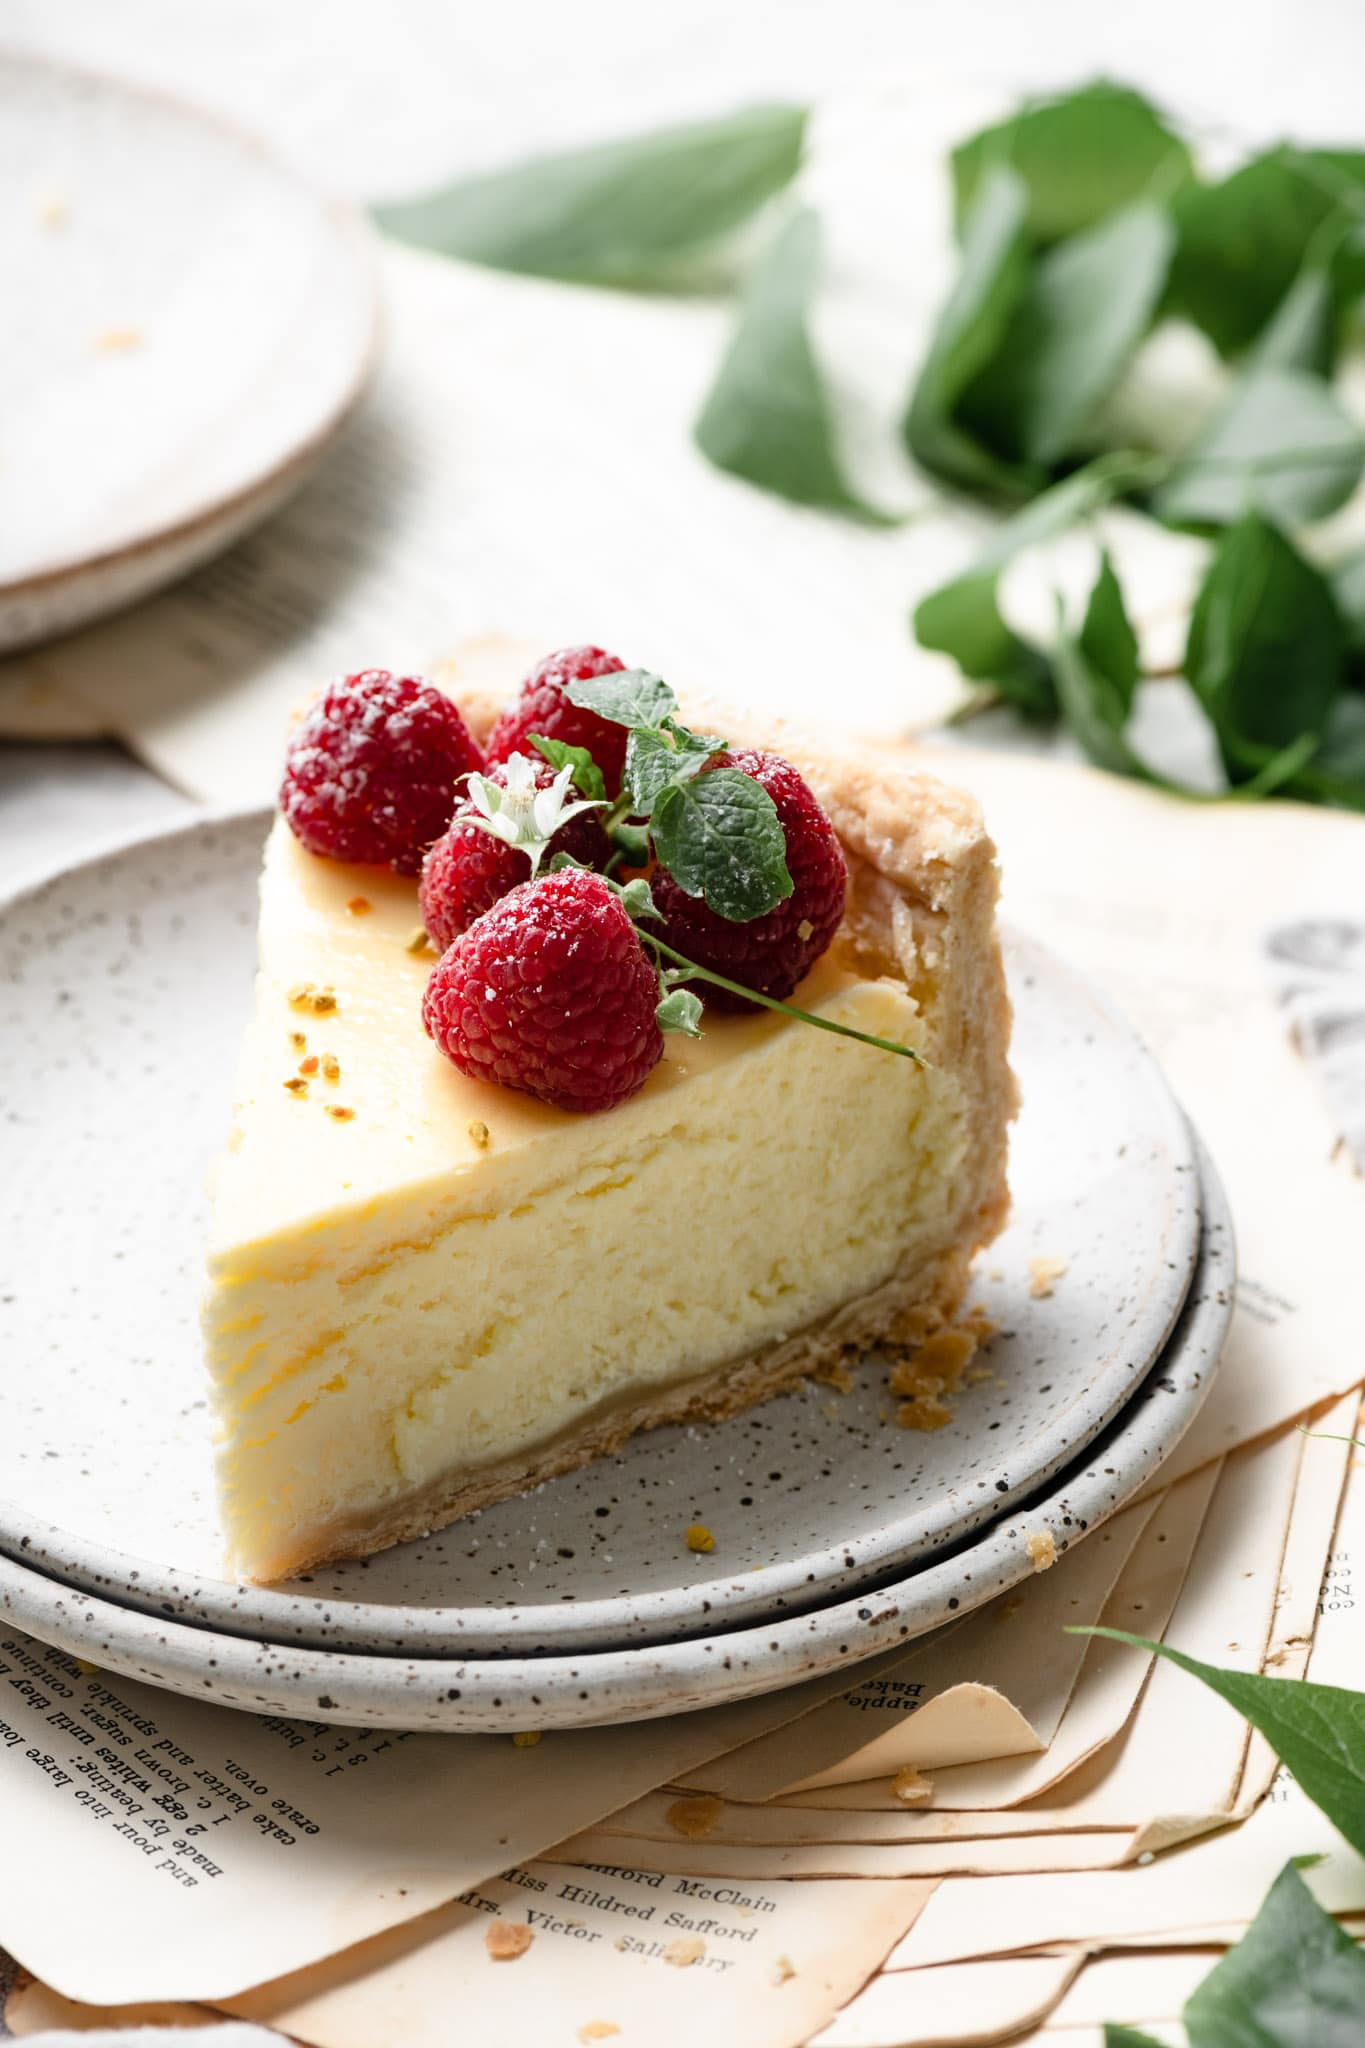 Lemon Cheesecake with pie crust.